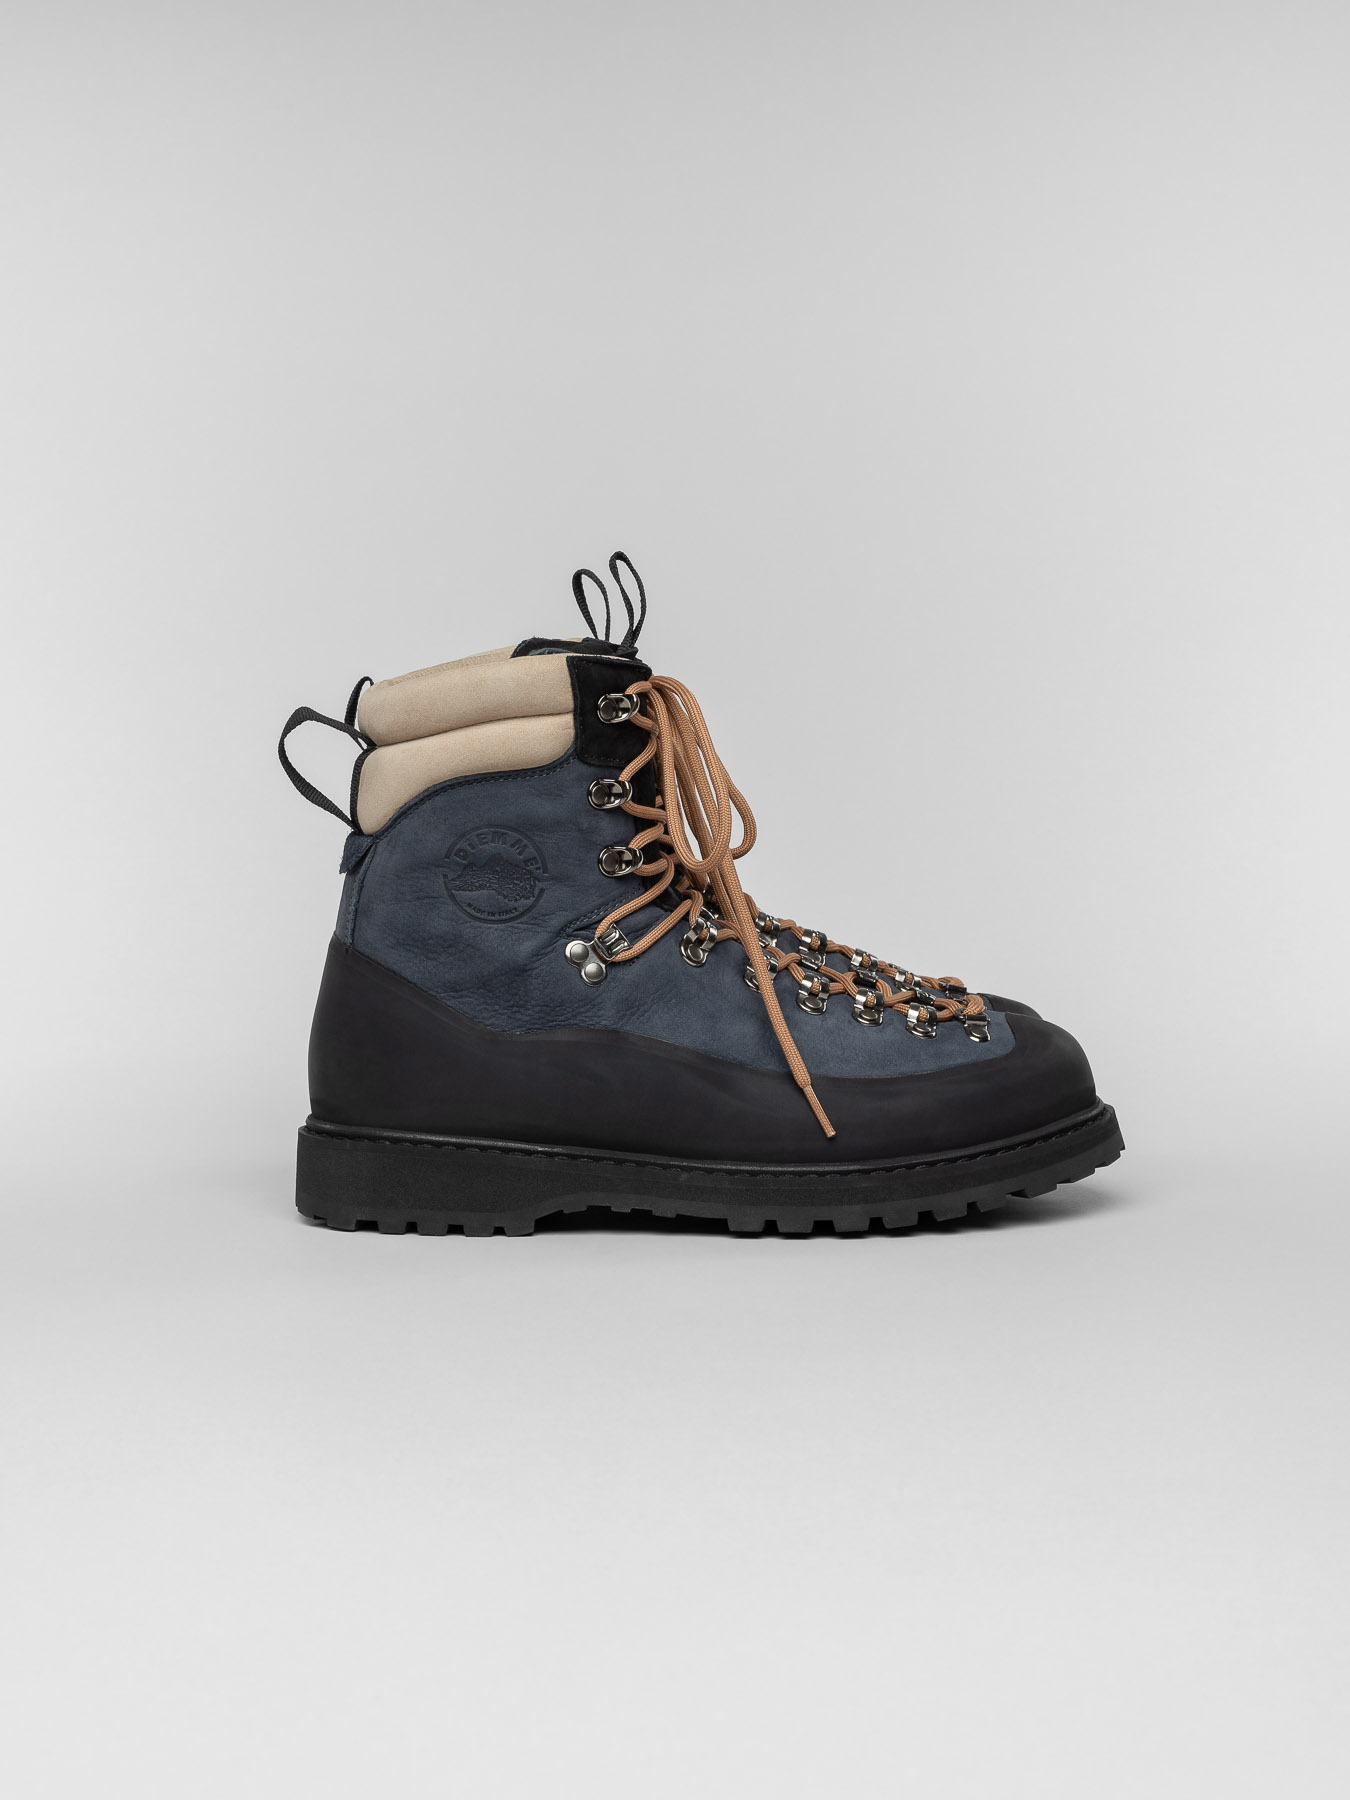 Diemme Everest Boots in Dusty Blue